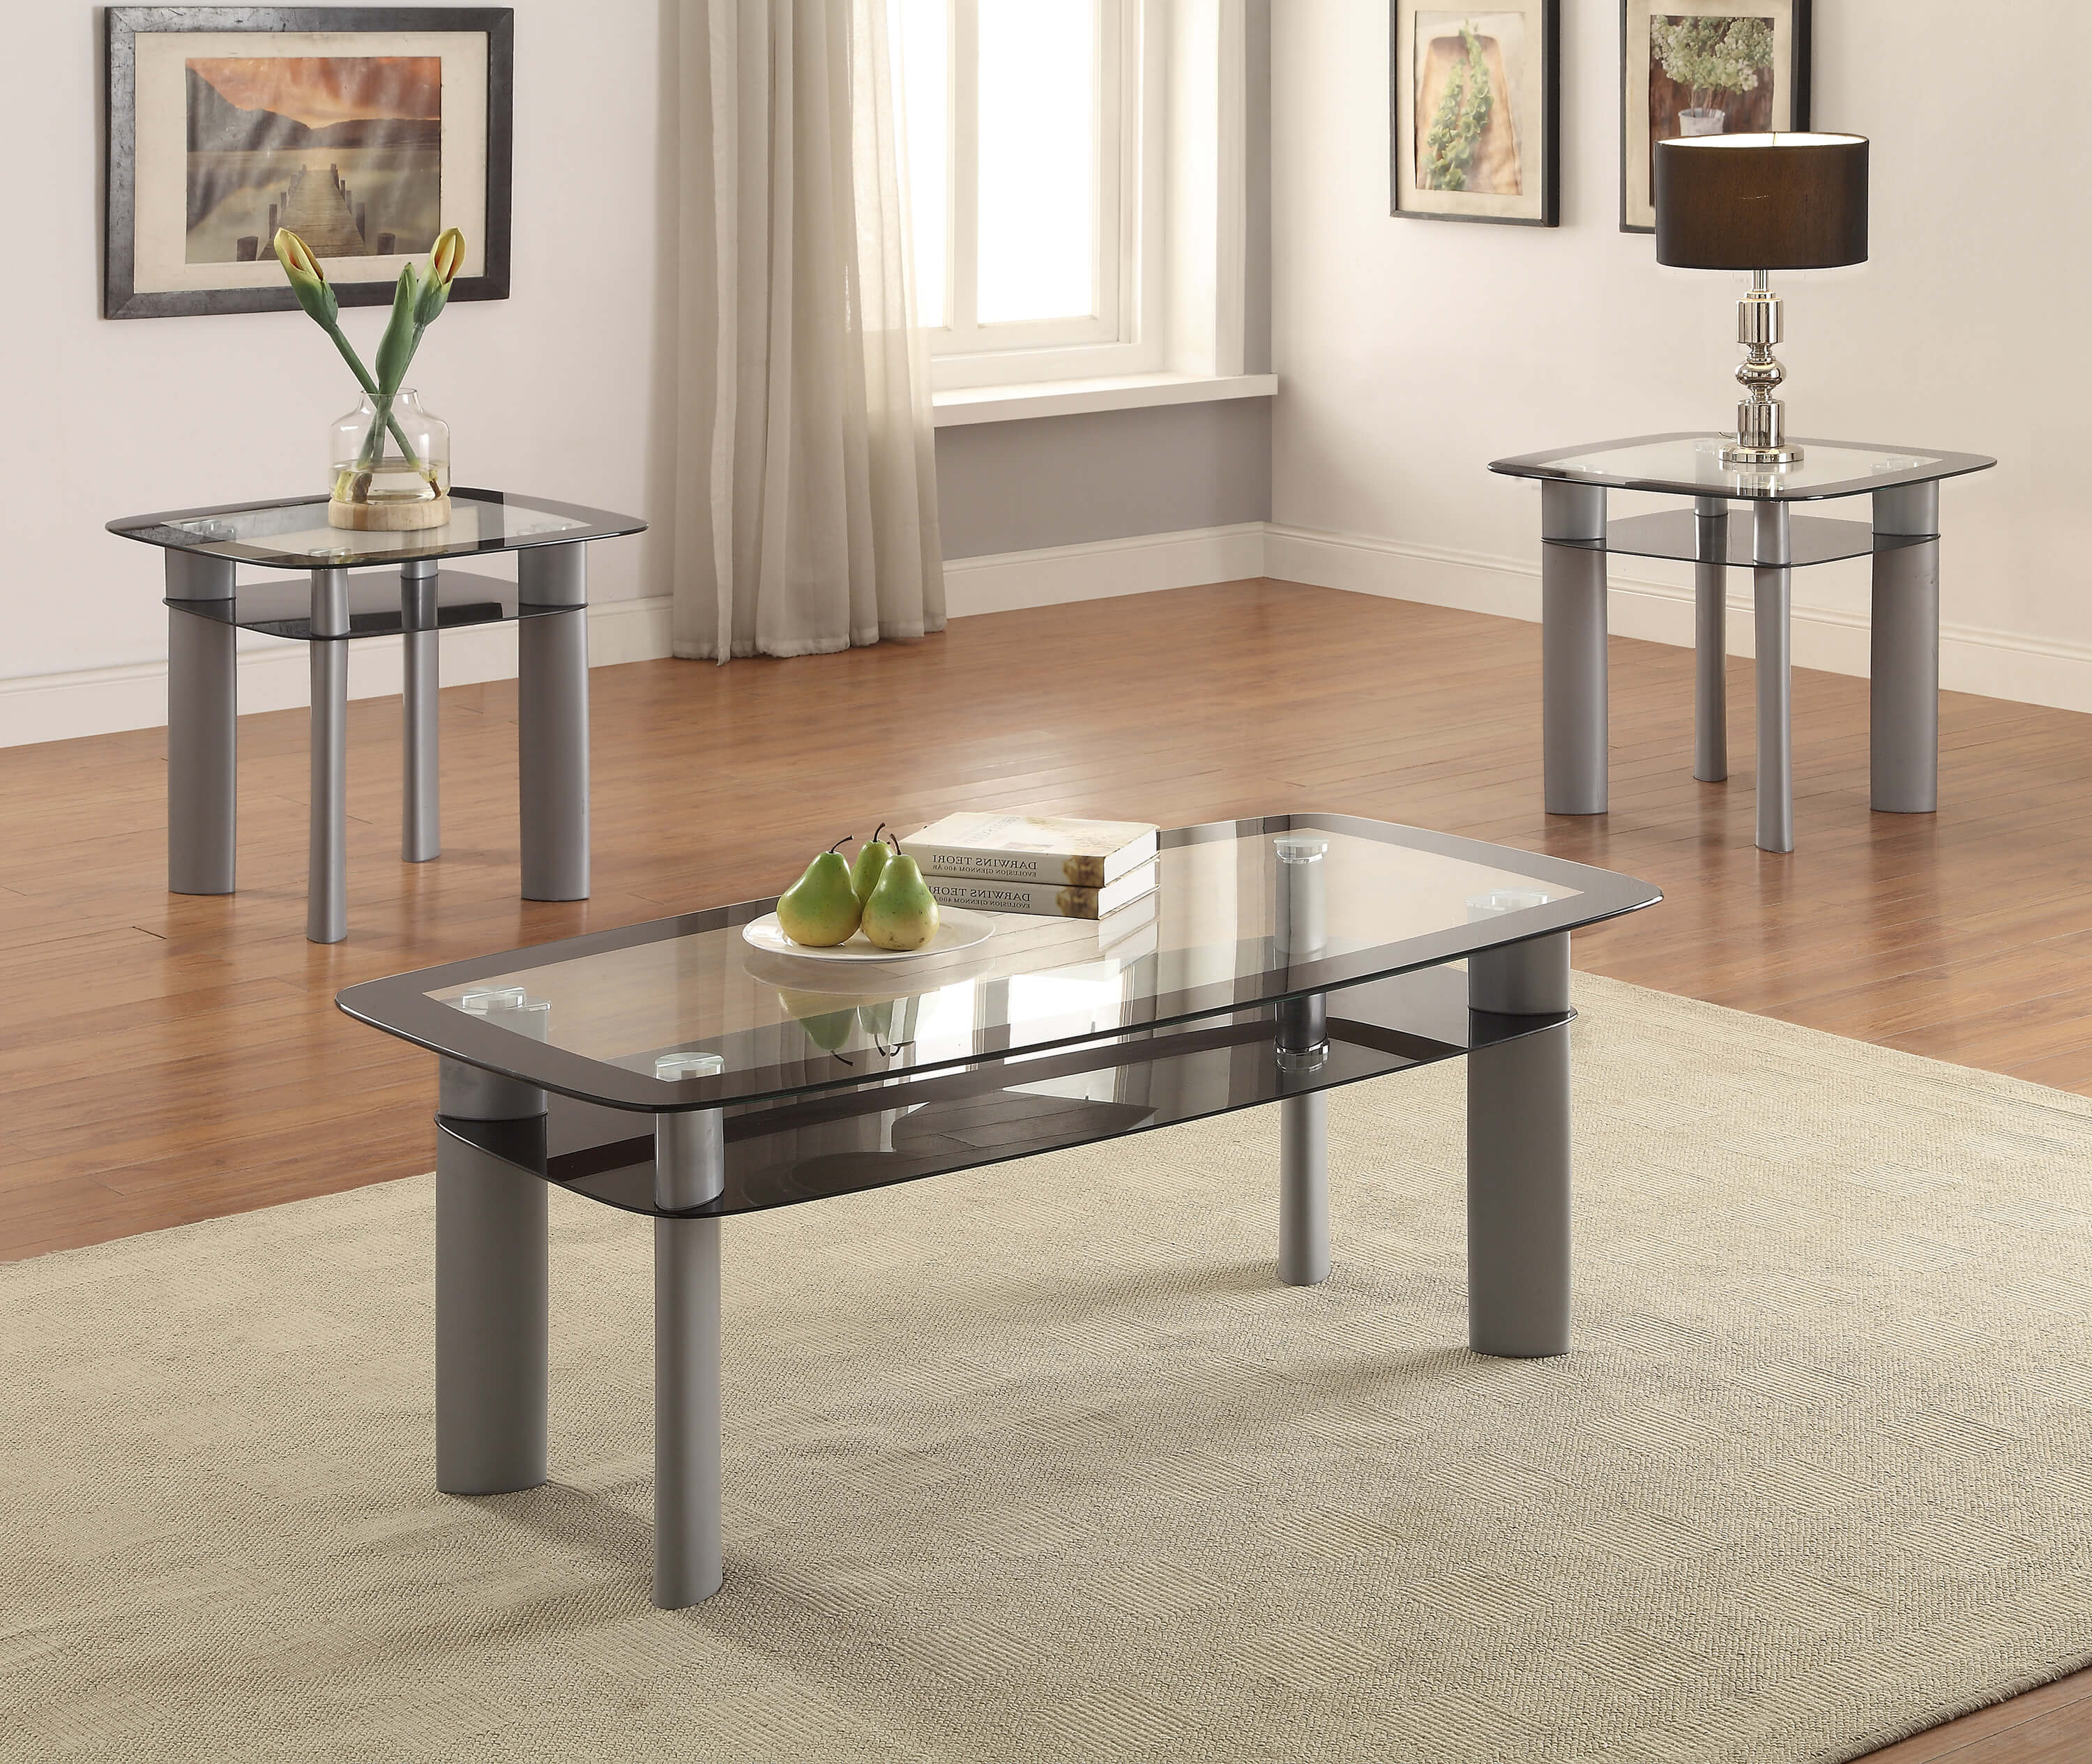 30 Live Edge Coffee Tables That Transform The Living Room: Metro Black Edge 3 Piece Coffee And End Table Set